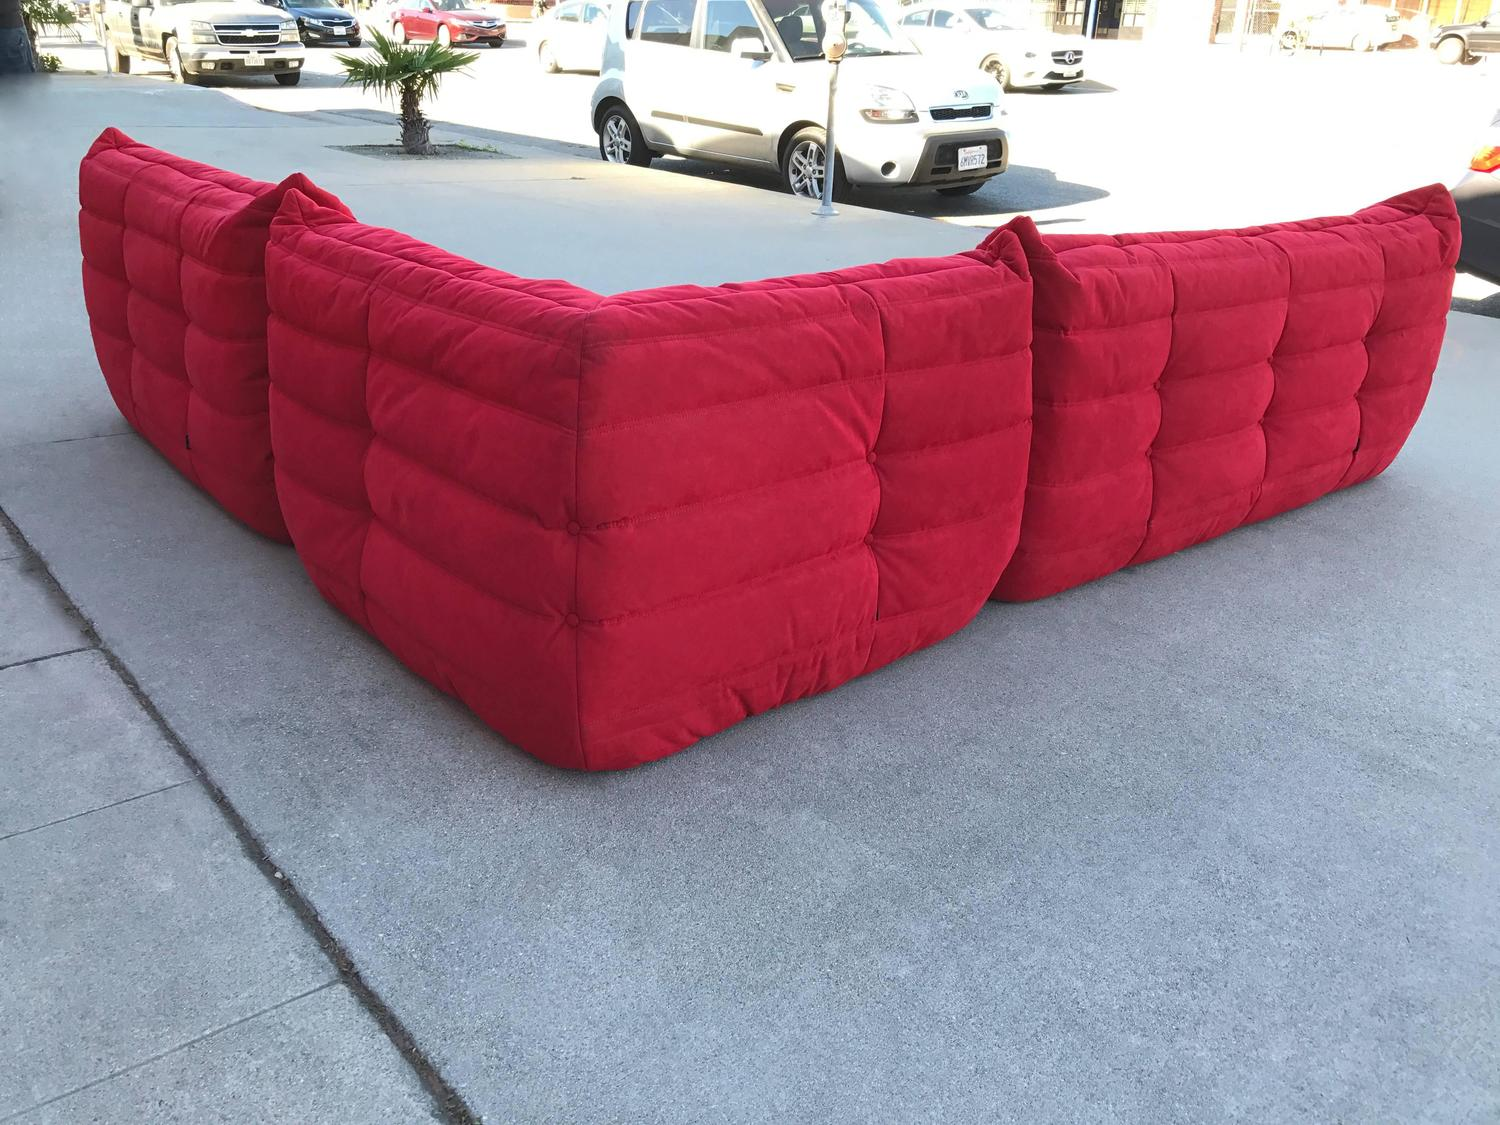 Ligne roset togo sectional sofa by michel ducaroy for sale at 1stdibs - Michel ducaroy togo sofa ...